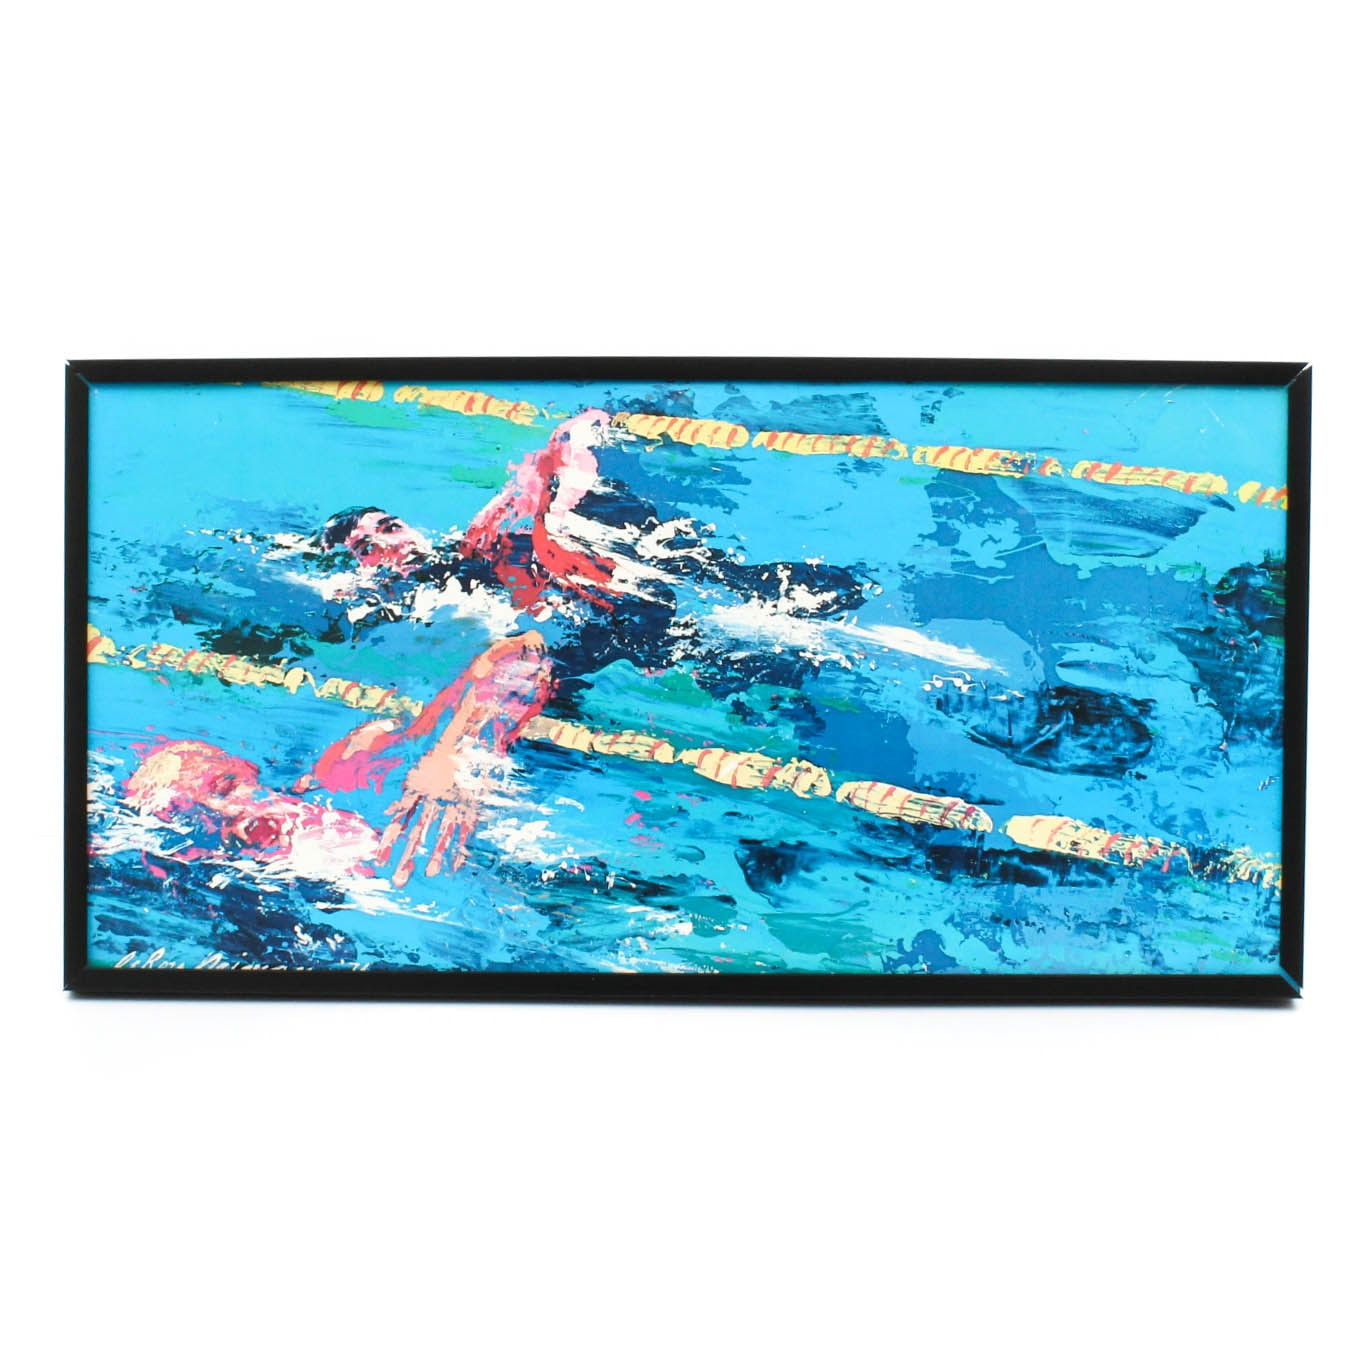 """Olympic Swimmer"" Offset Lithograph by Leroy Neiman"